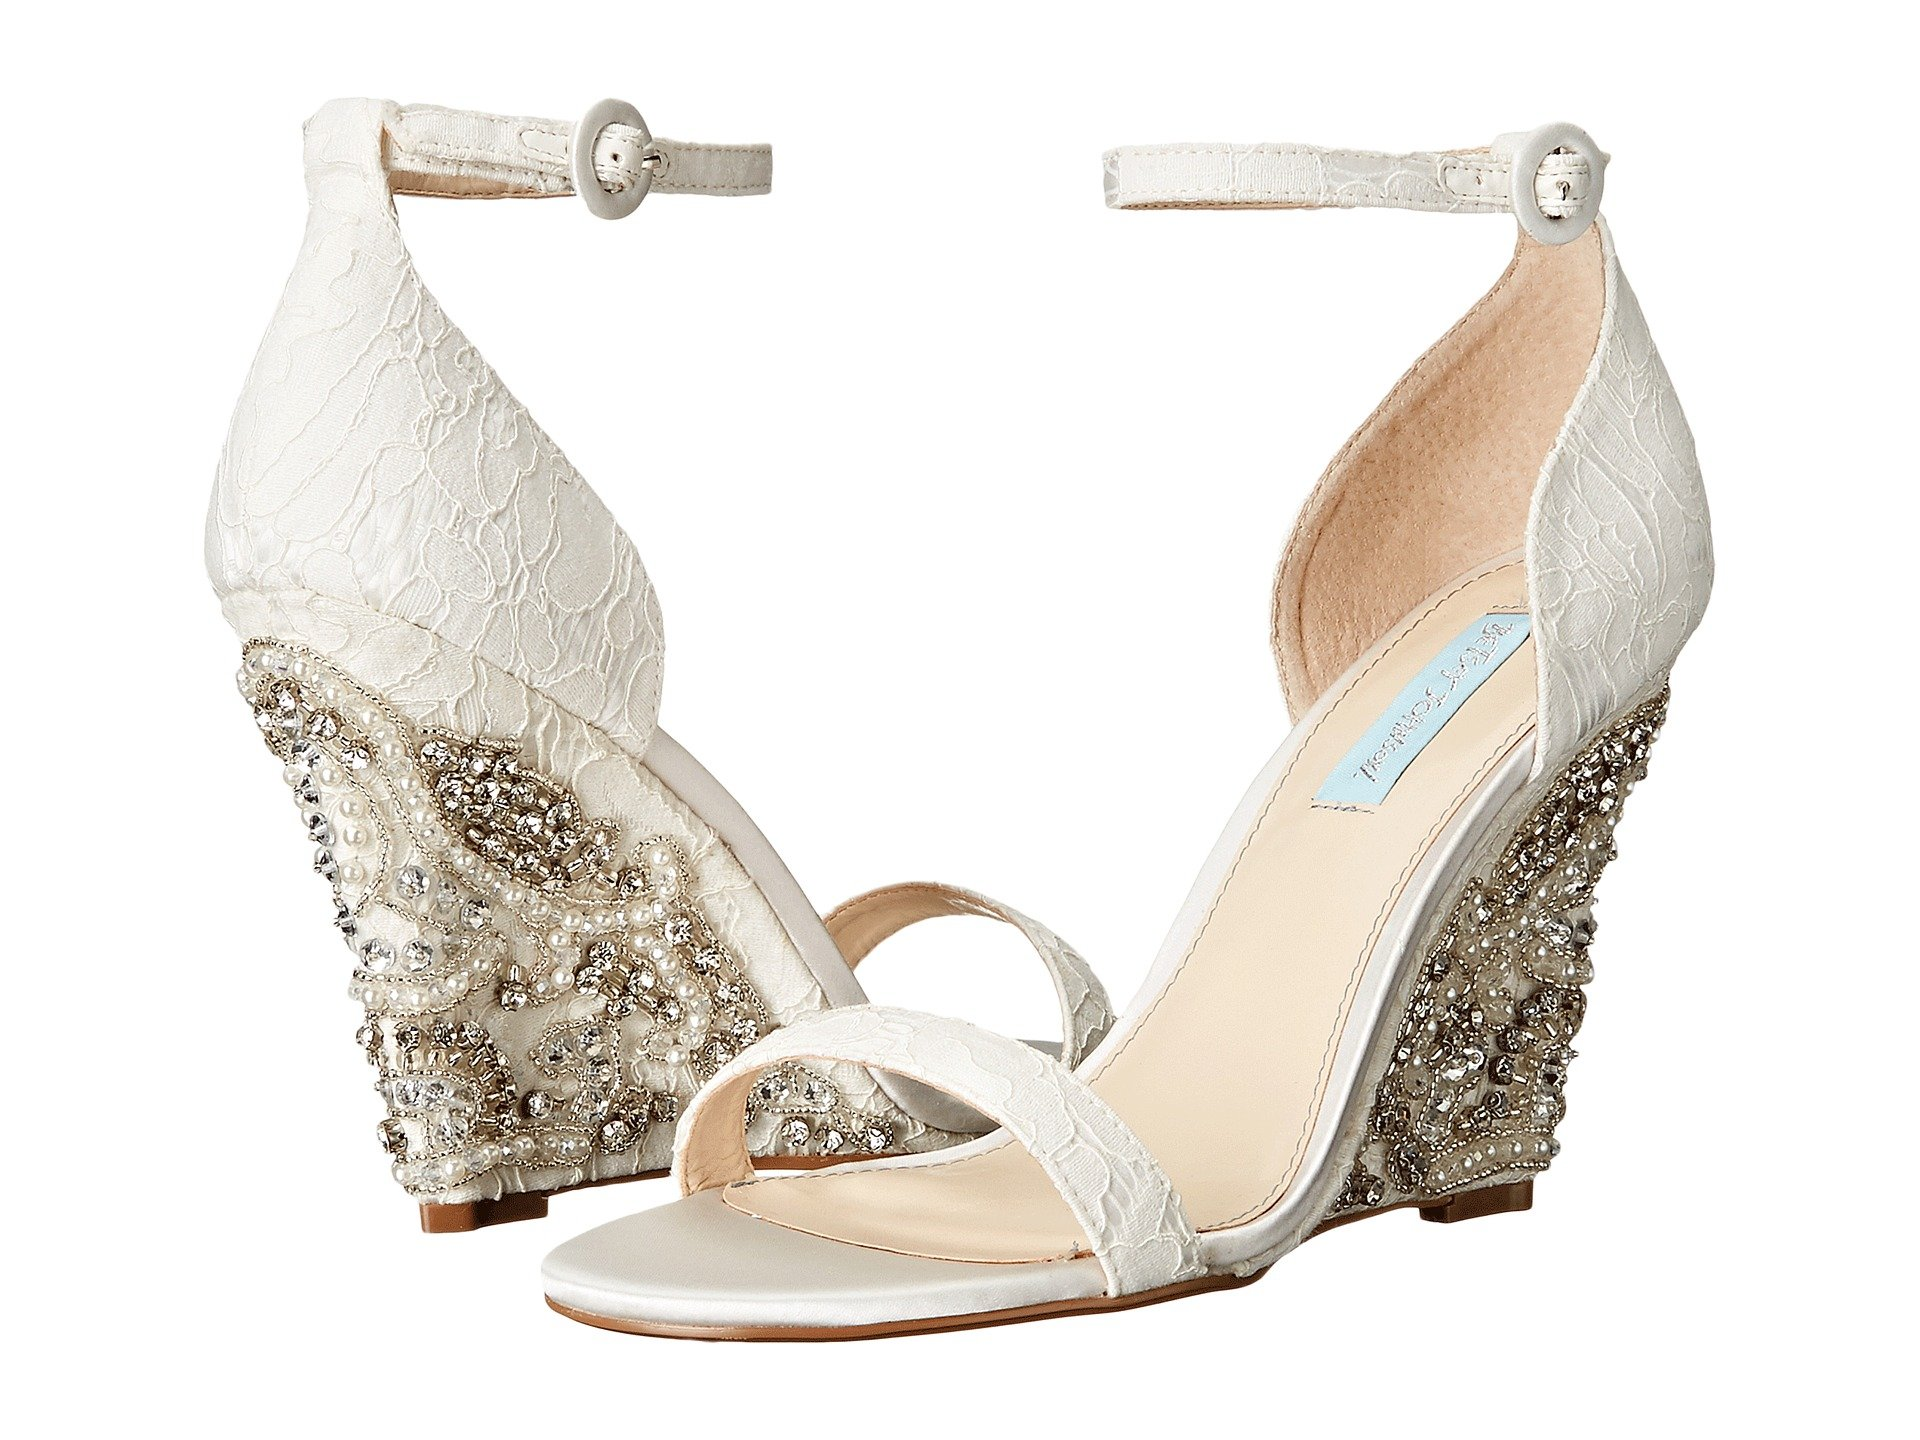 Blue By Betsey Johnson Alisa At Zappos Com